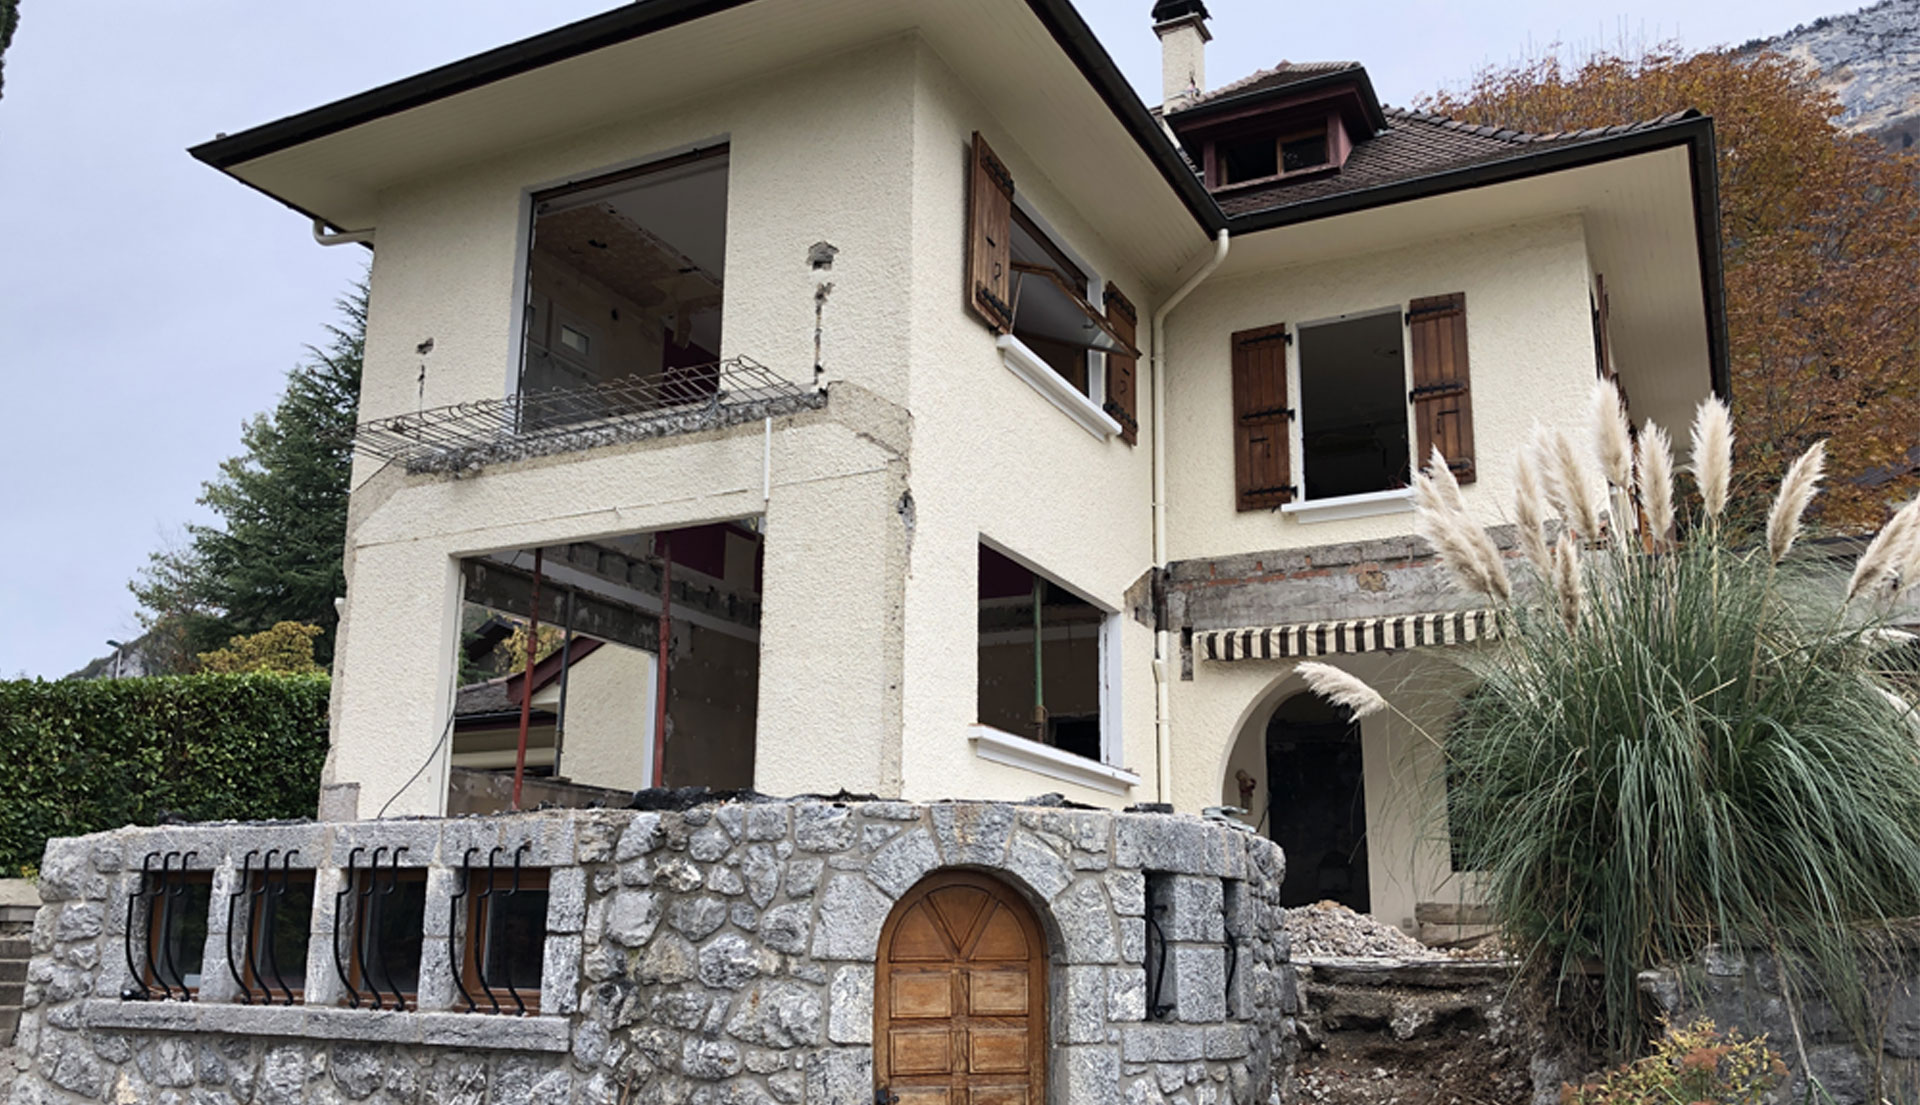 End of work on our villa in Veyrier-du-Lac 1